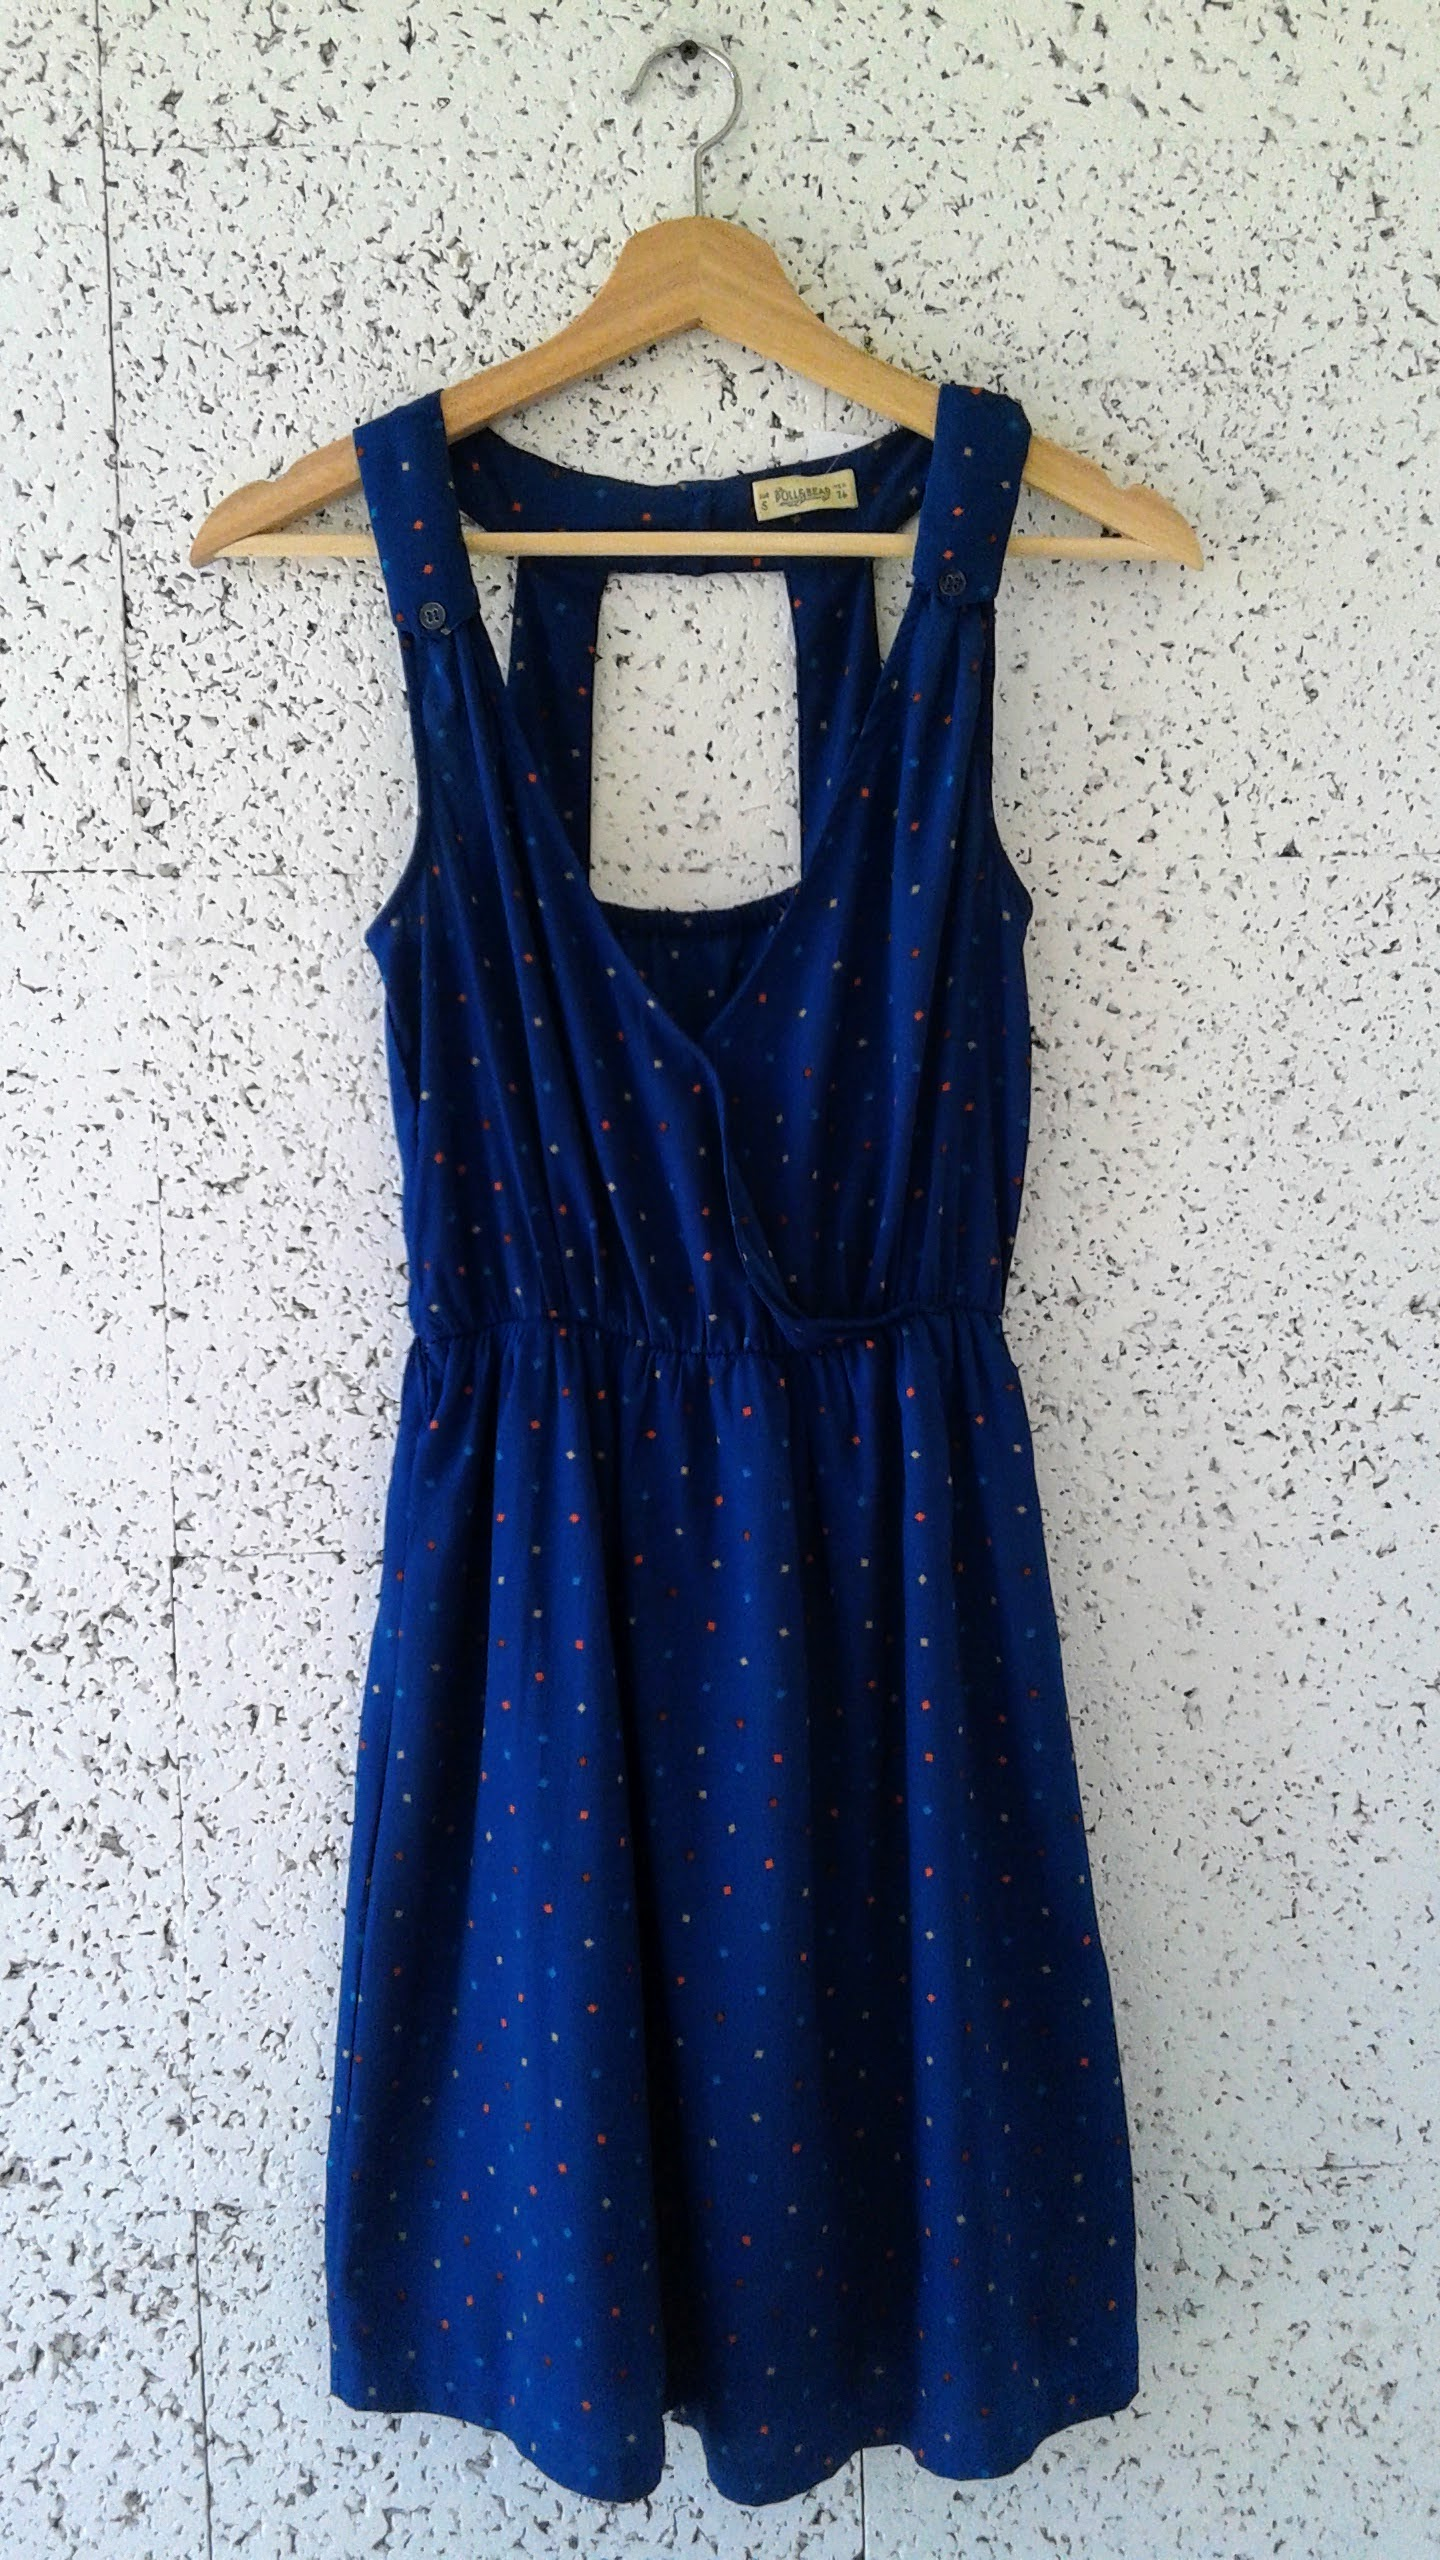 Pull and Bear dress; Size S, $28